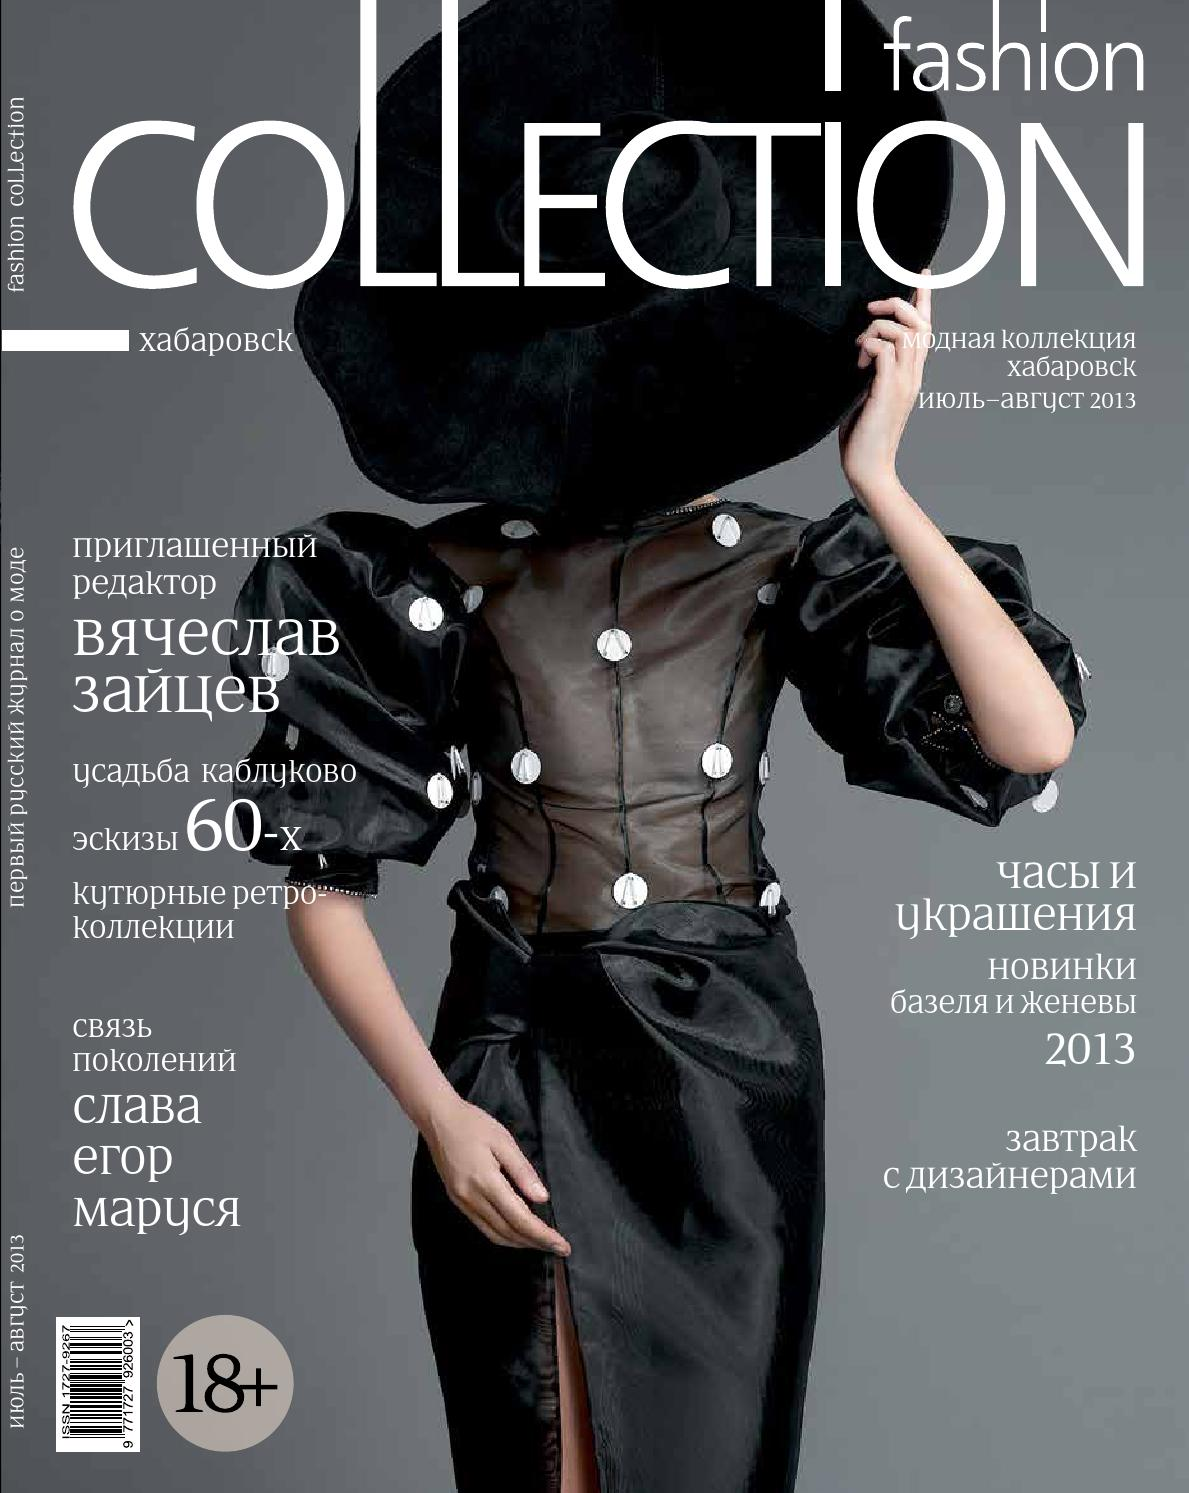 eb1eb9cb7f20 Fashion Collection Хабаровск № 98 by Журнал о моде «Fashion Collection  Хабаровск» - issuu